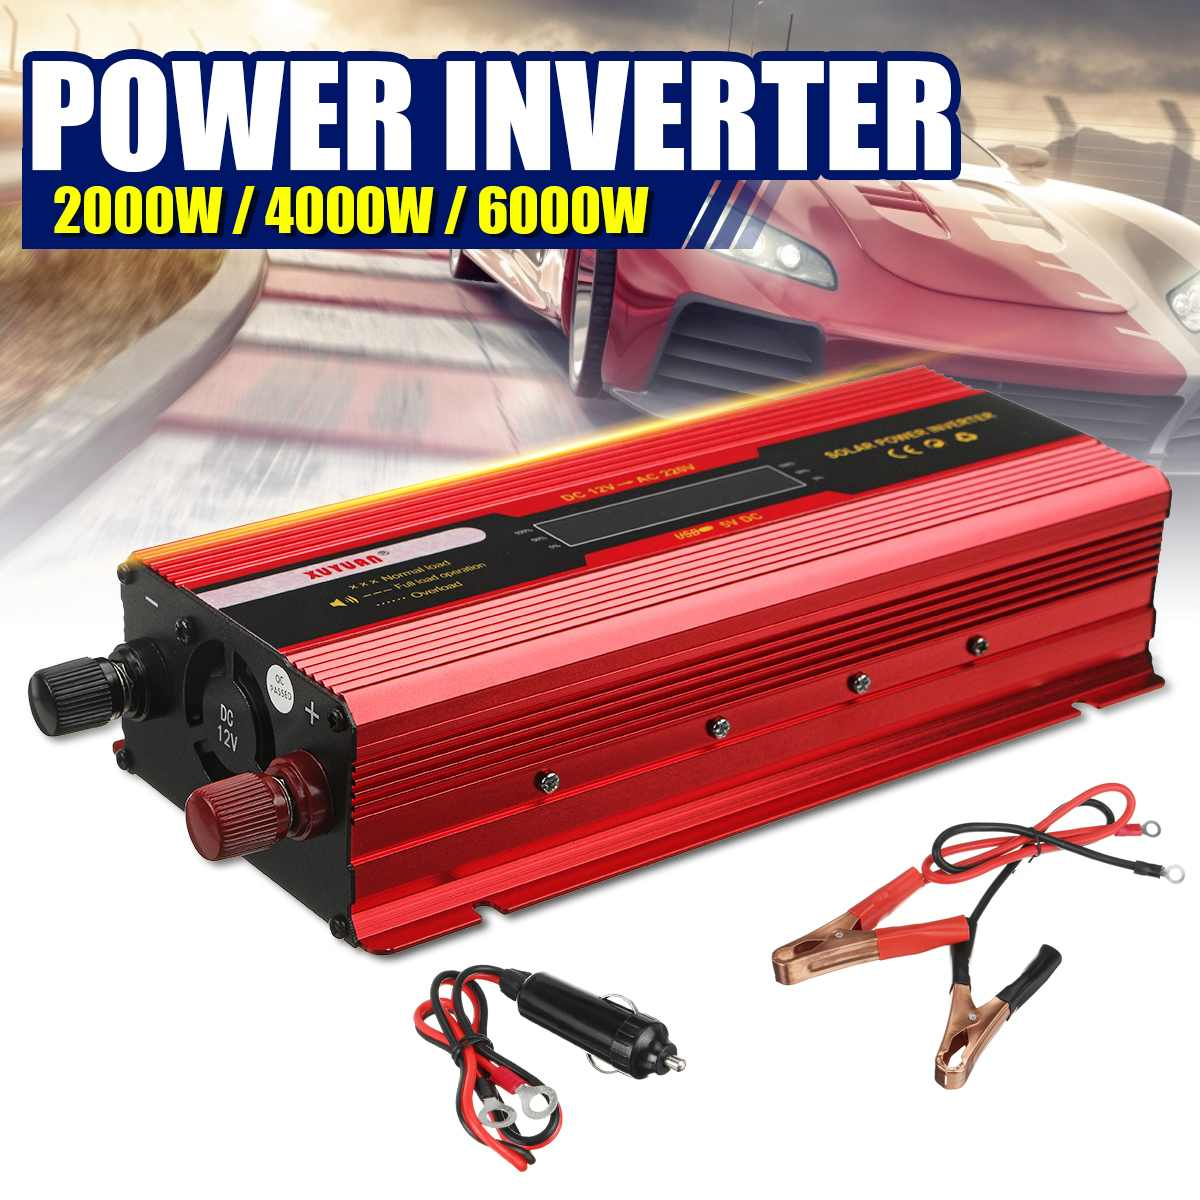 Auto <font><b>Inverter</b></font> DC 12V zu AC <font><b>220V</b></font> power <font><b>inverter</b></font> Modifizierte Sinus Welle 2000 W/4000 W/ 6000W LCD display Solar USB auto Transformator Konvertieren image